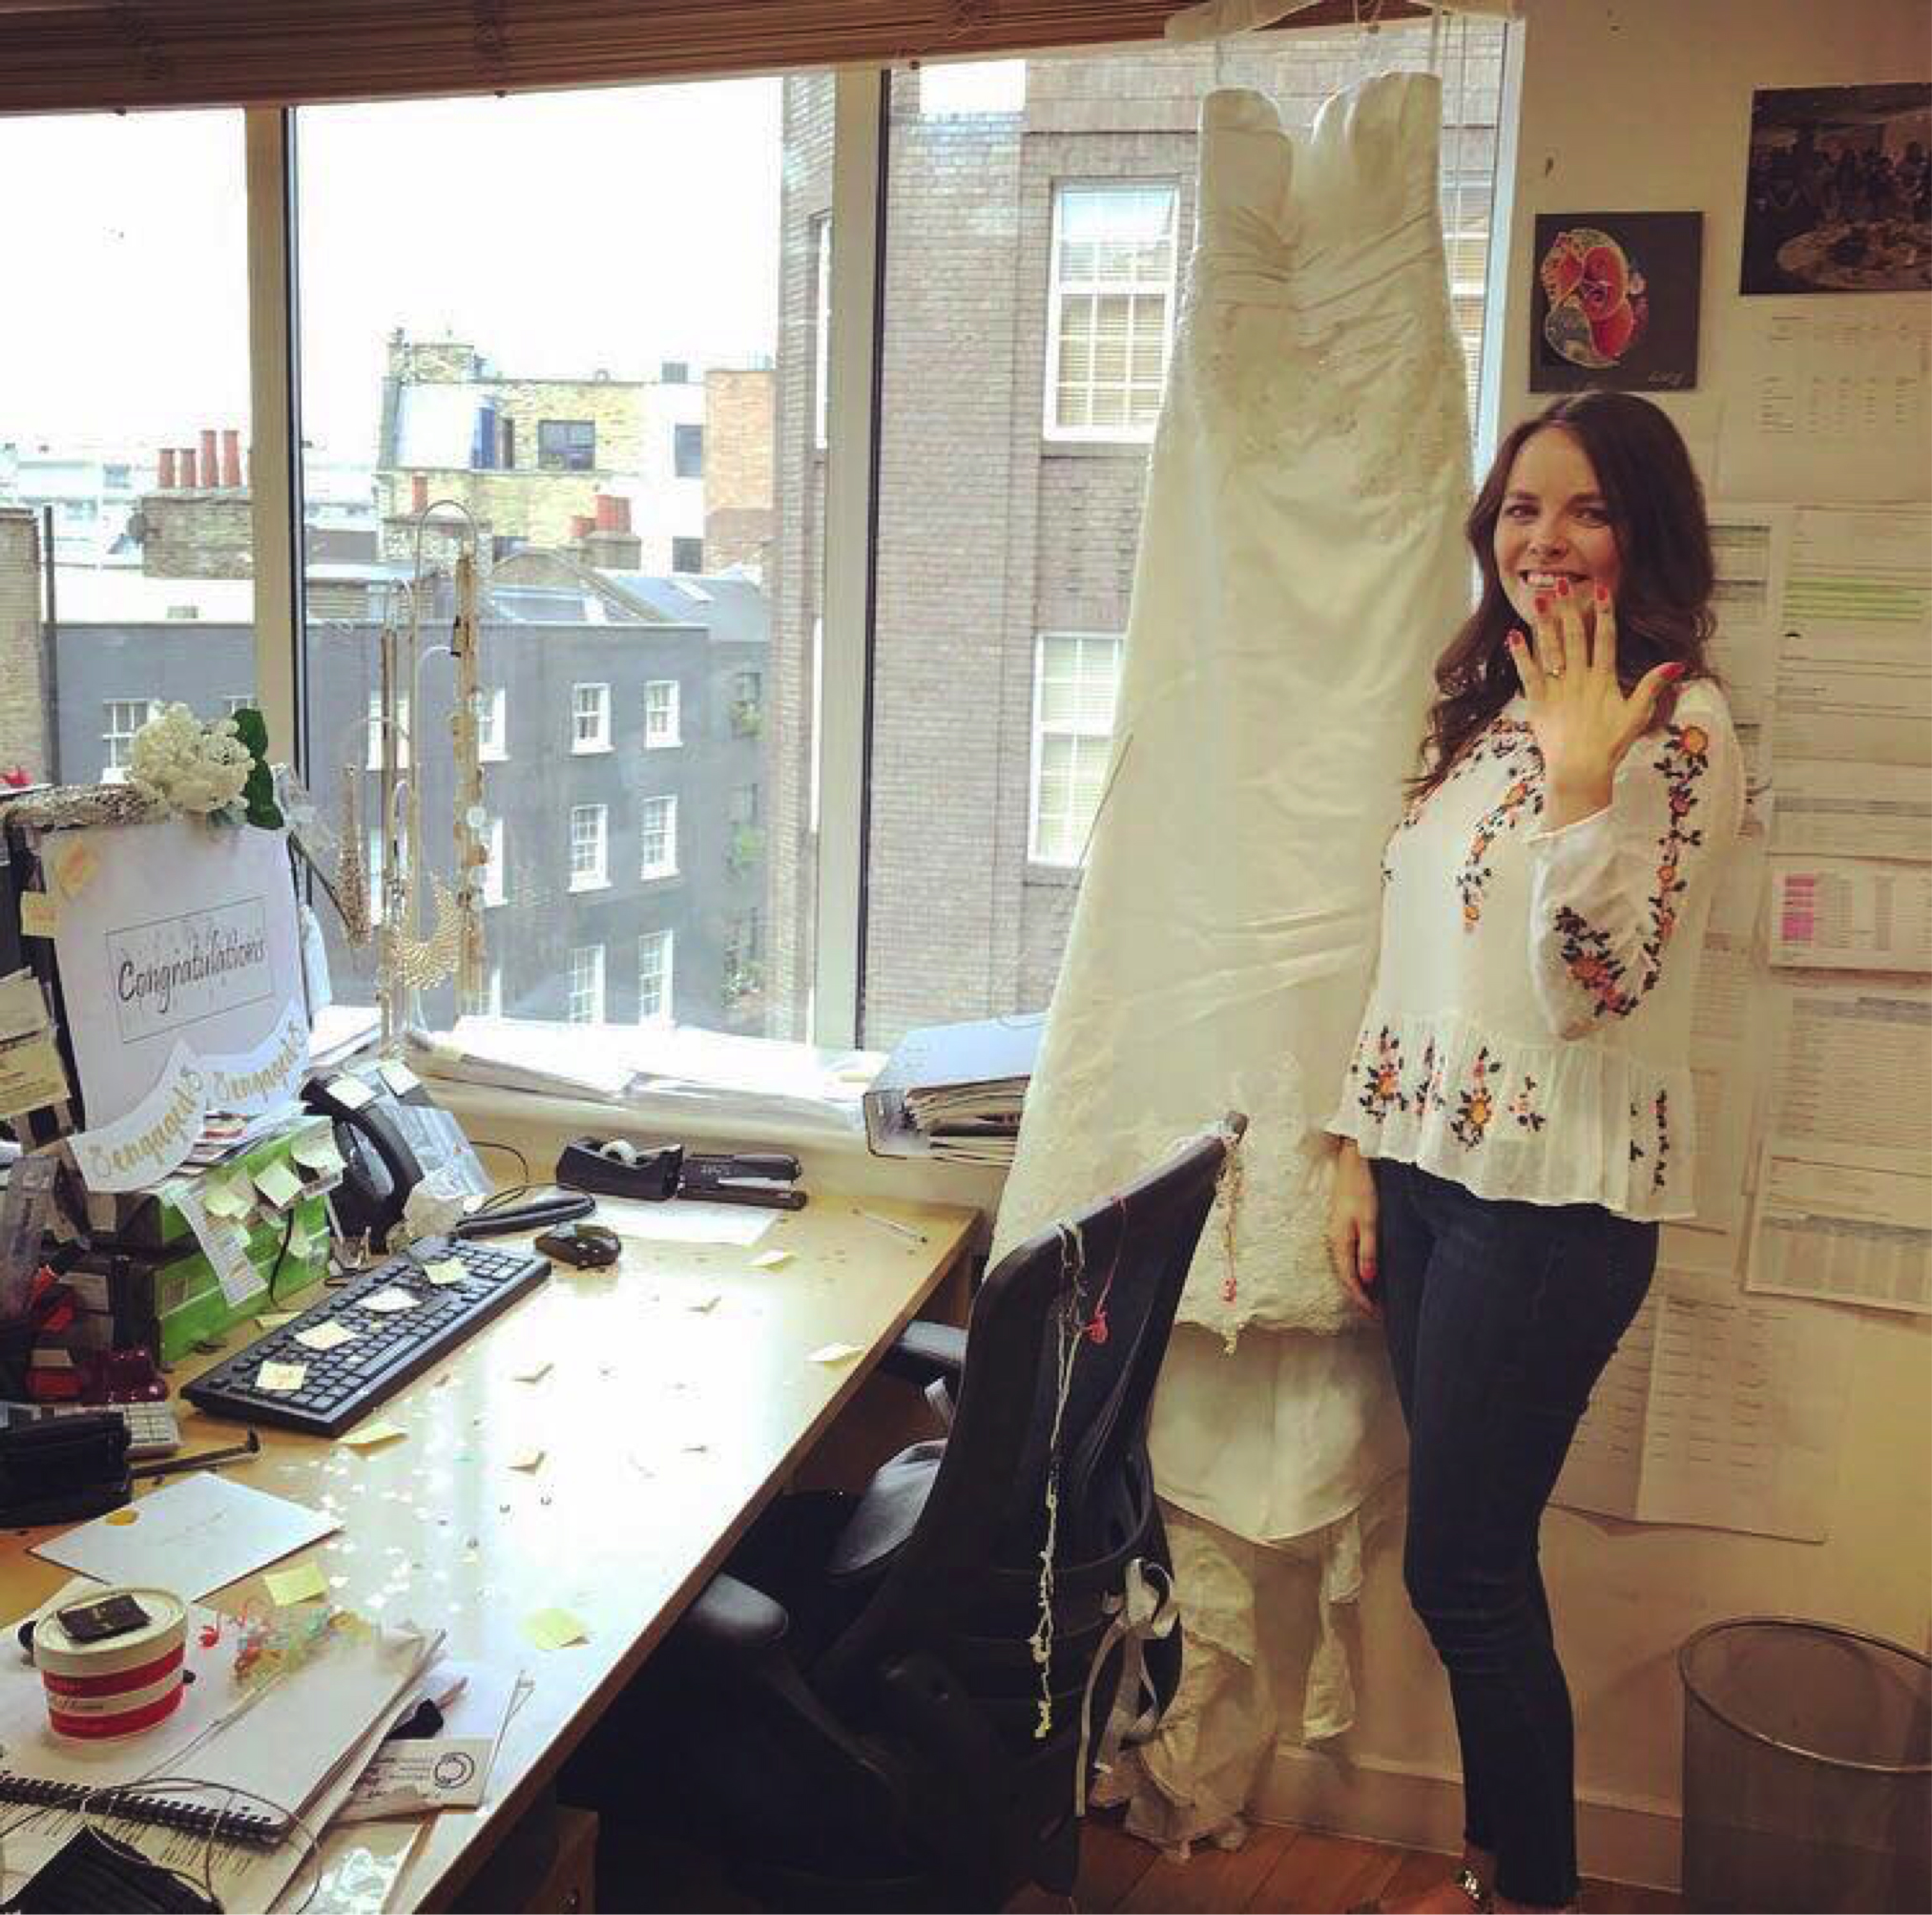 Lucy from the Together Team - Engaged!